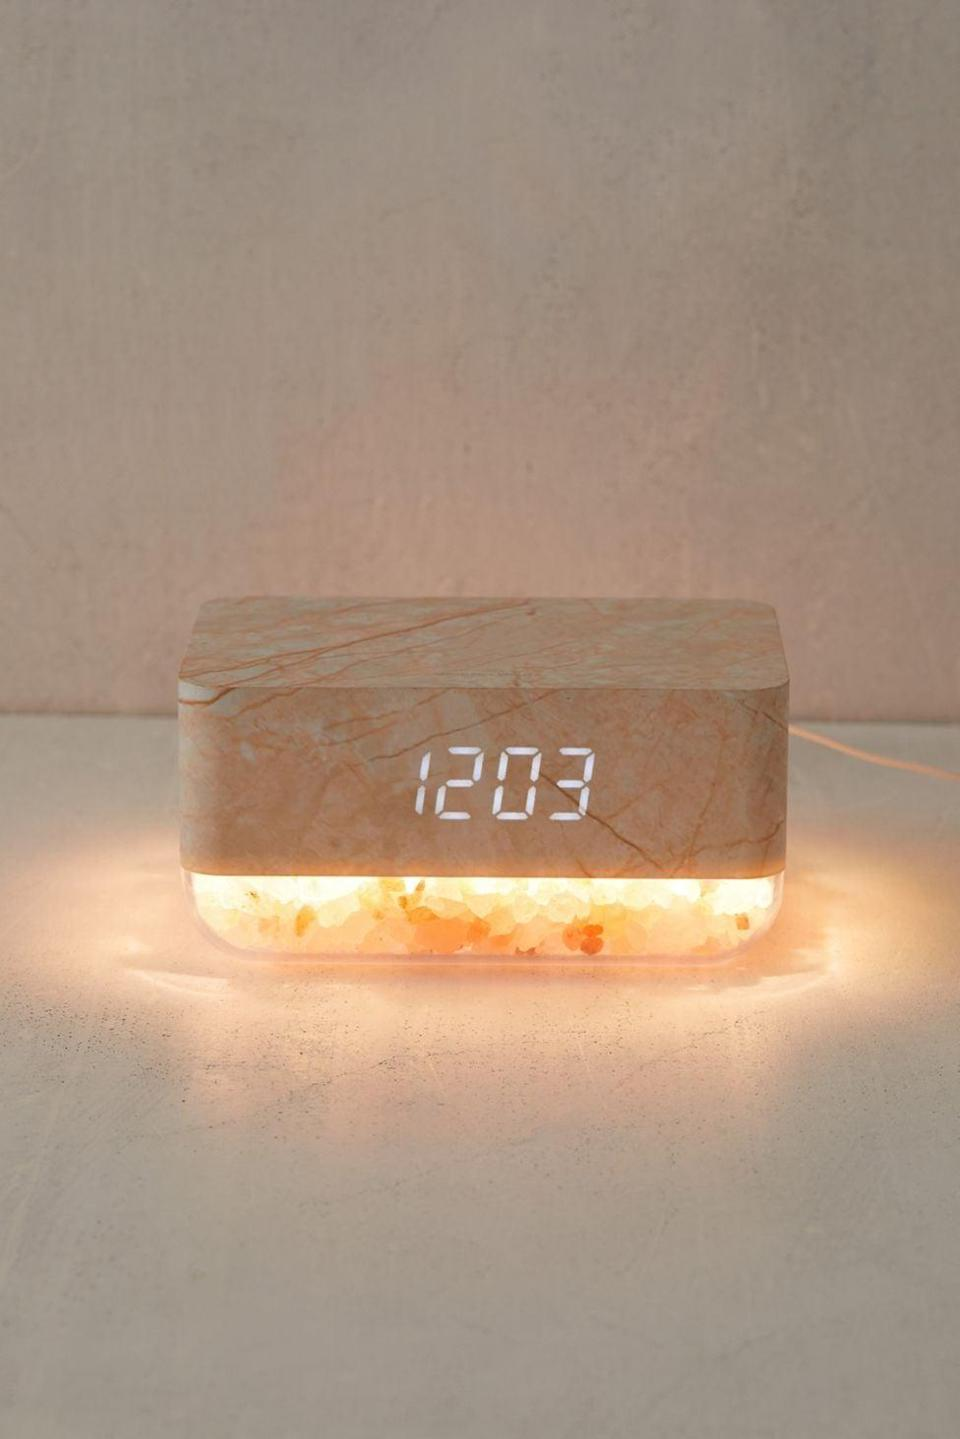 <p>Make their mornings more positive and uplifiting with this stunning <span>Mahli Himalayan Salt Sunrise Alarm Clock</span> ($38). The clock shows the time and temperature, and has a snooze function. It comes in three colors including white marble, black and grey marble, and a wooden texture. </p>